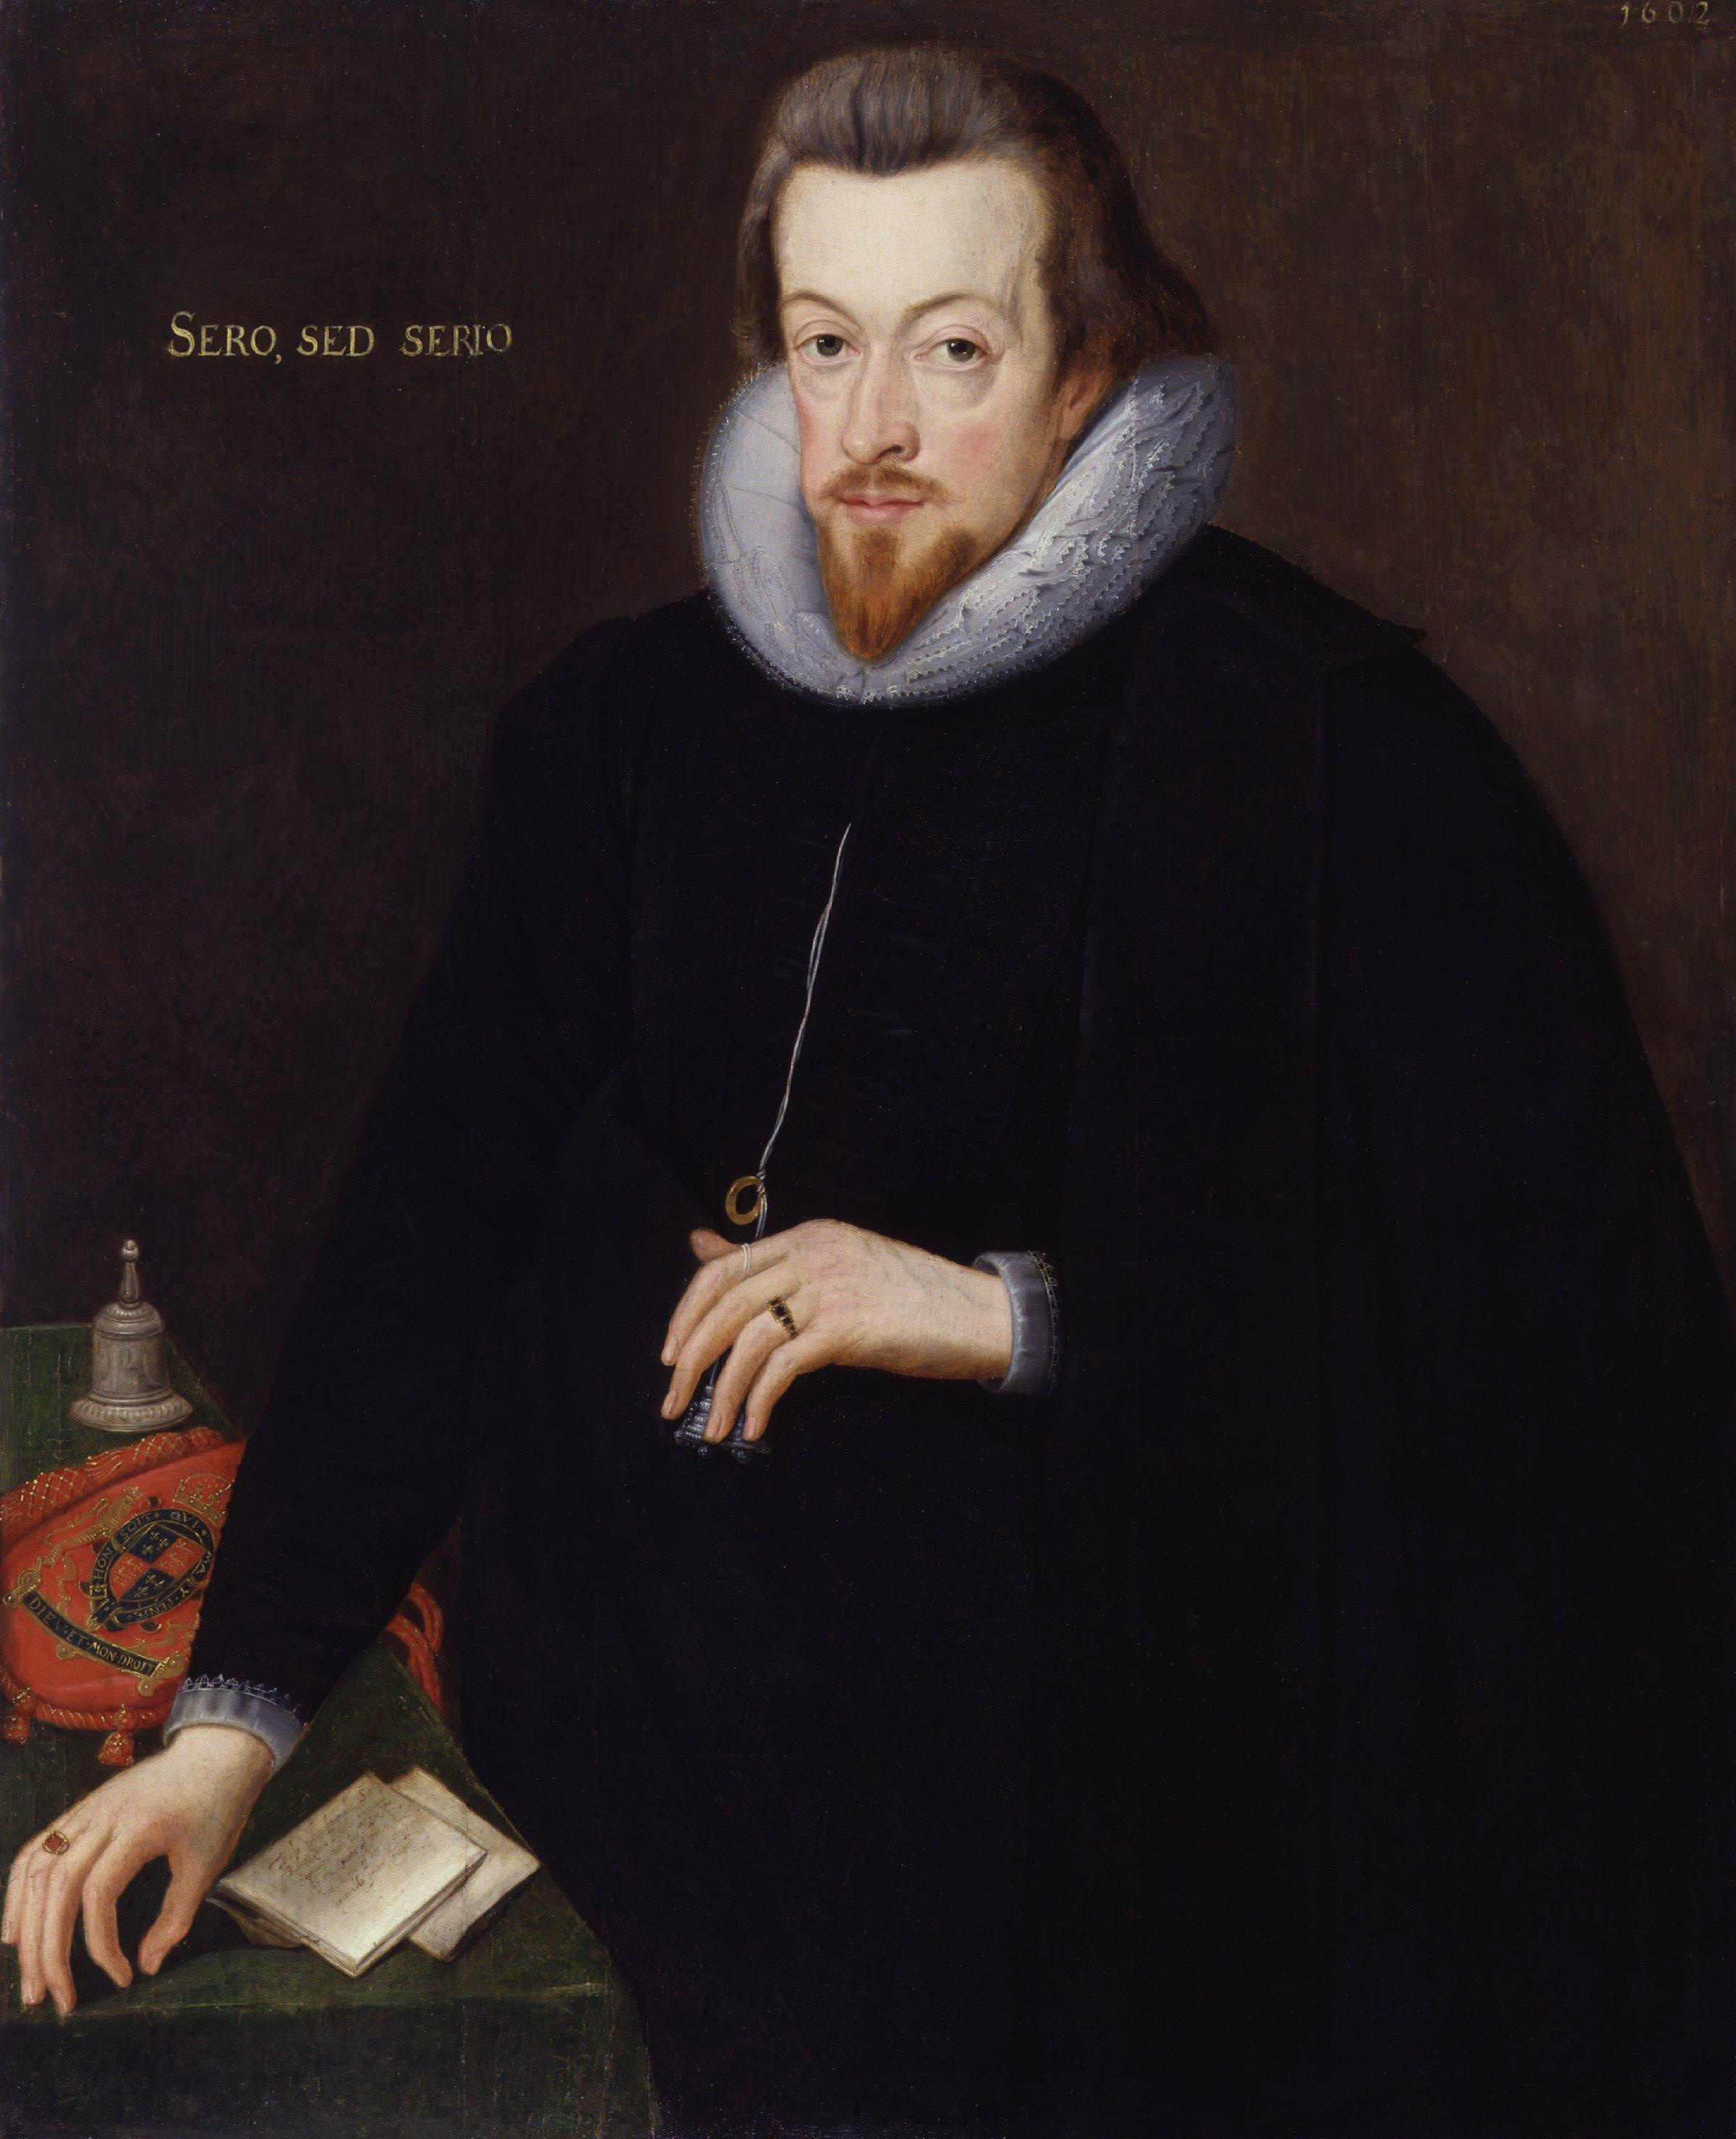 https://upload.wikimedia.org/wikipedia/commons/8/85/Robert_Cecil%2C_1st_Earl_of_Salisbury_by_John_De_Critz_the_Elder_%282%29.jpg